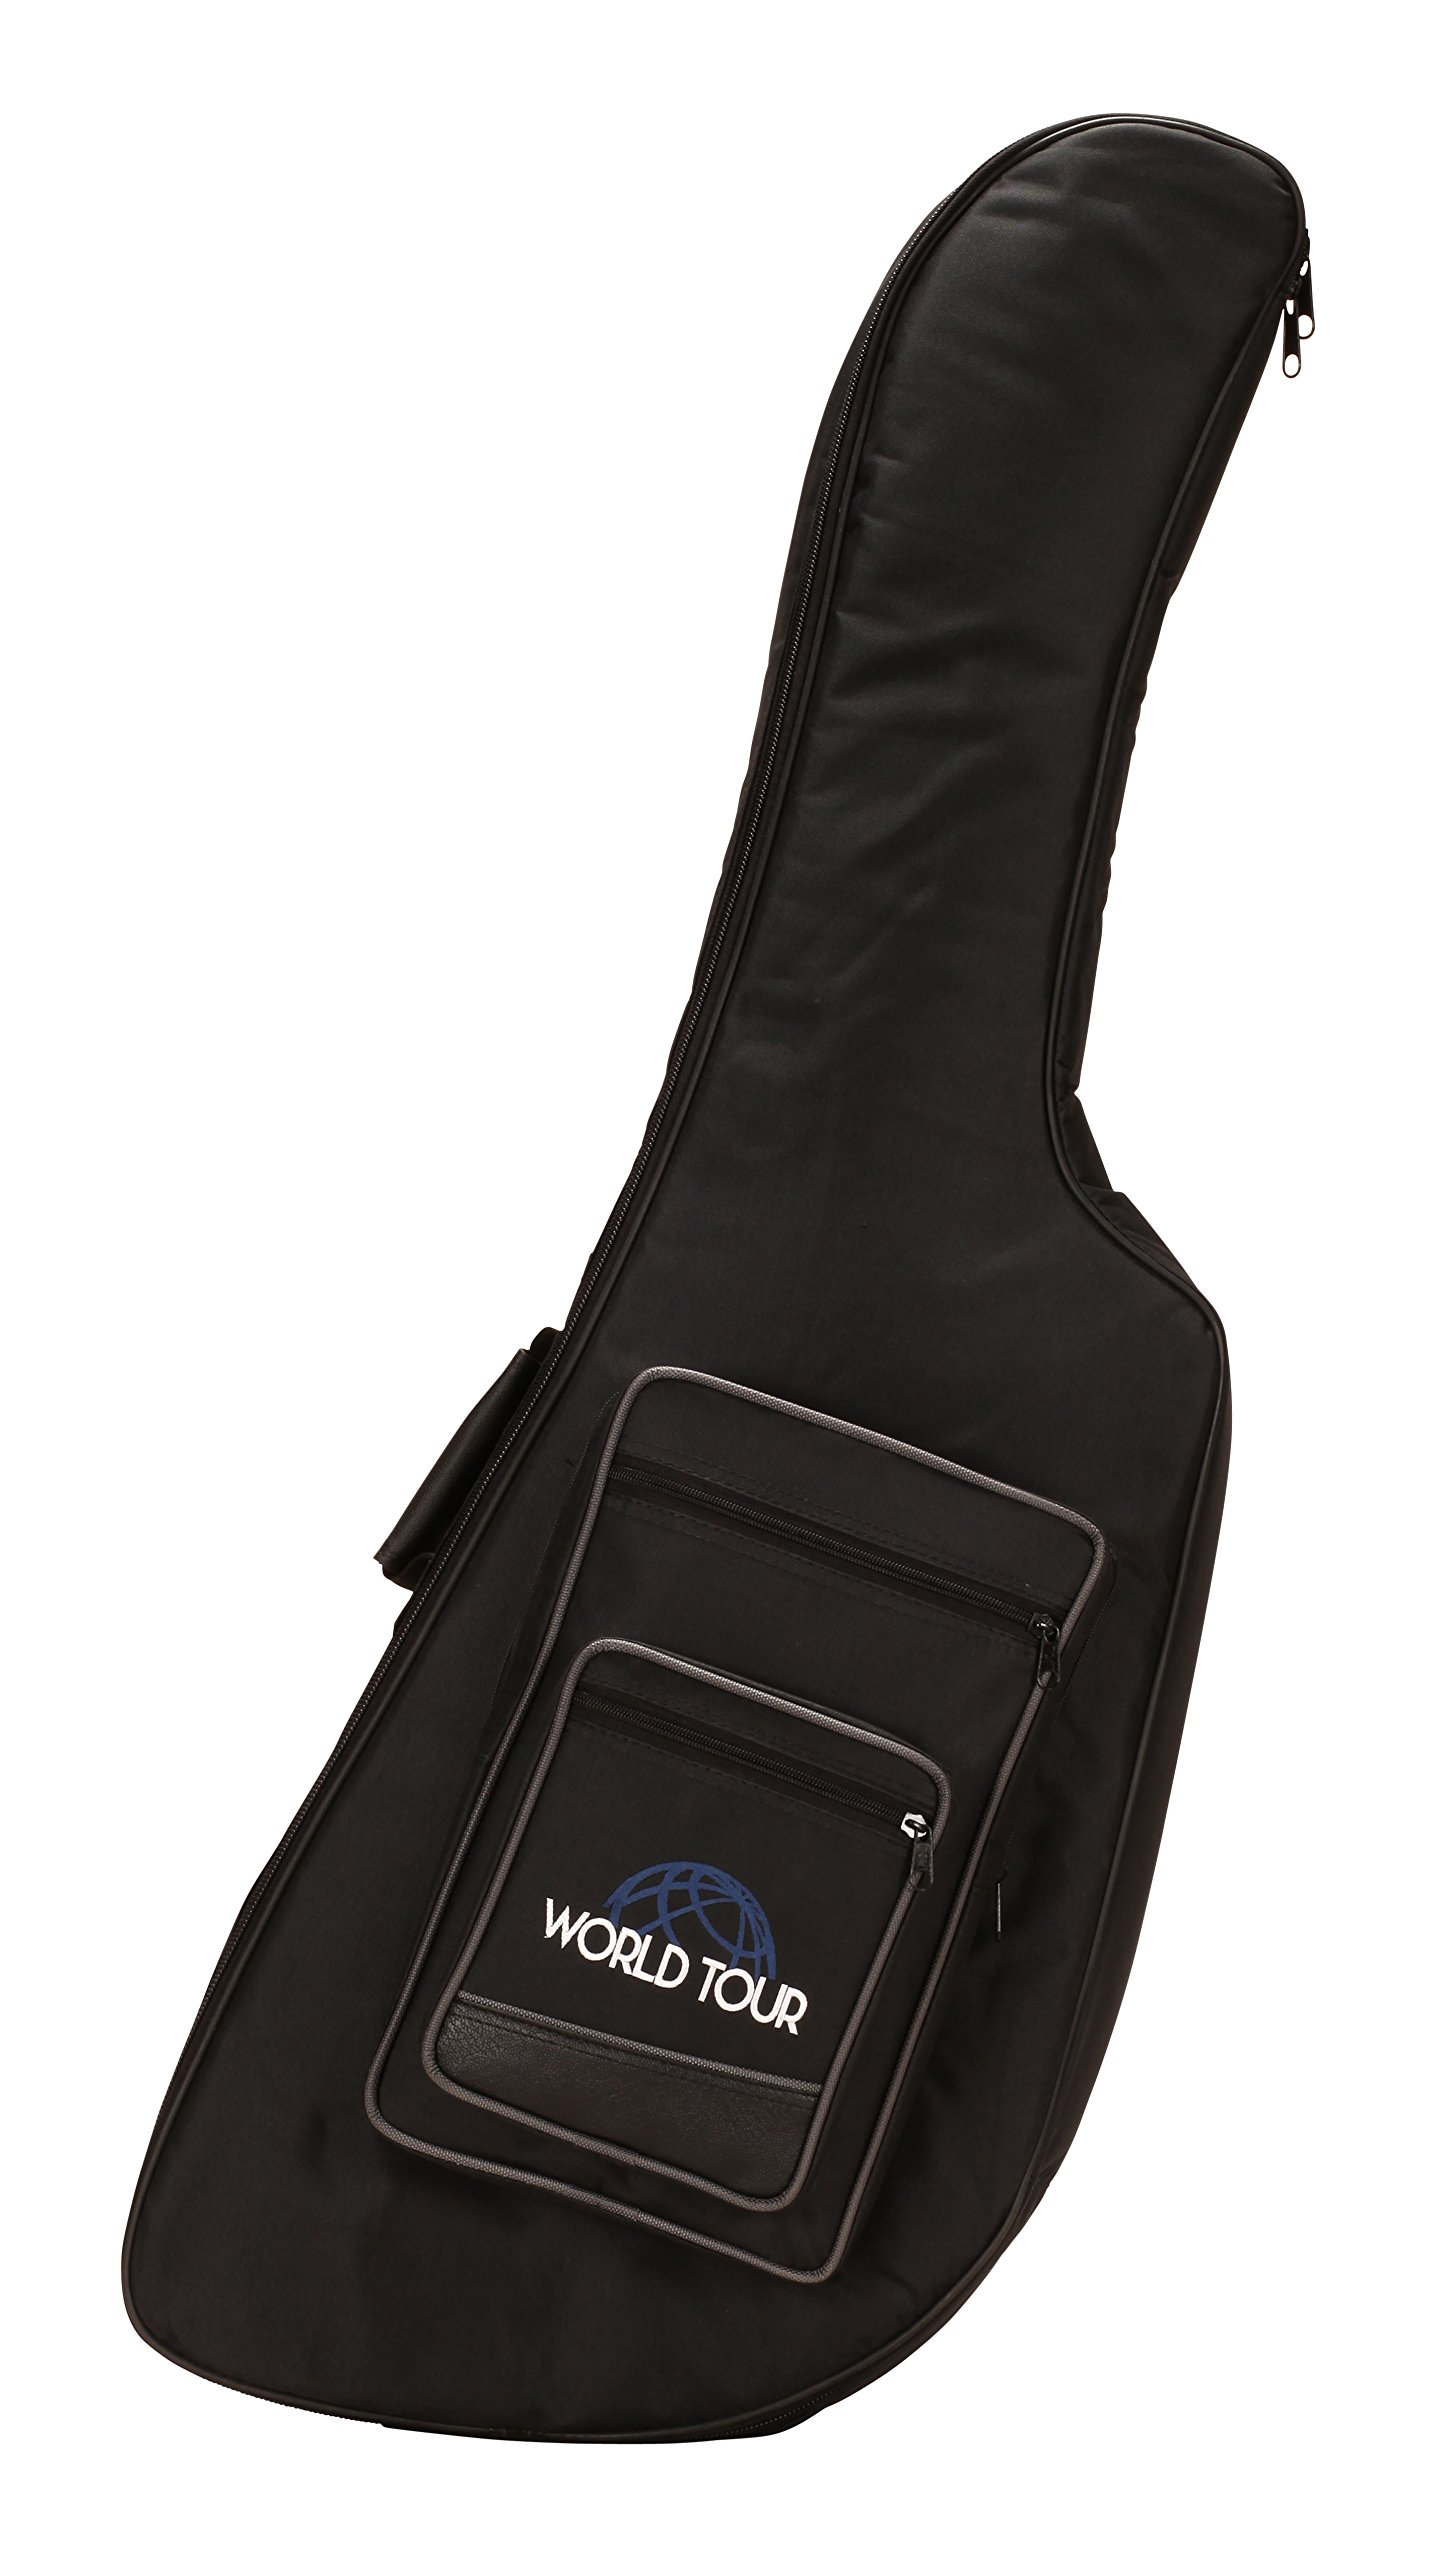 World Tour EXPG20DN Deluxe 20mm Guitar Gig Bag for Gibson and Epiphone Explorer Guitars